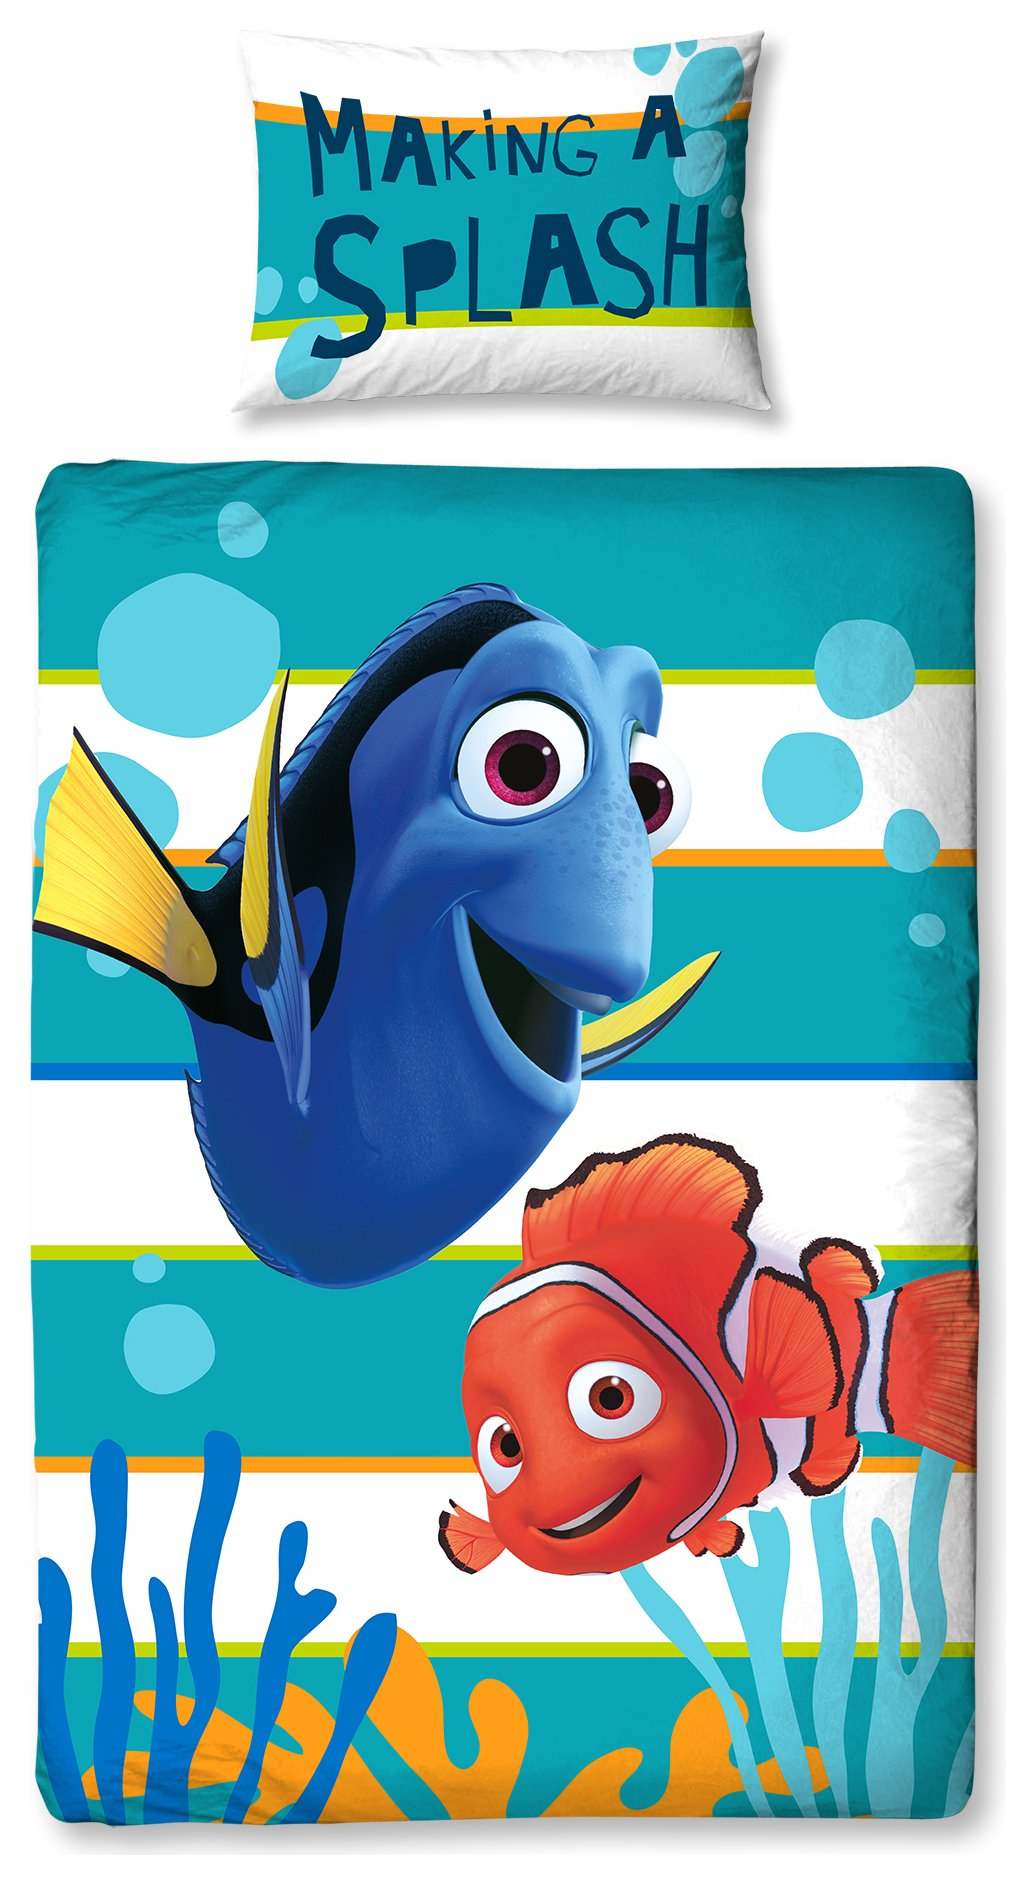 image for Disney Finding Nemo Dory Duvet Cover Set - Single.